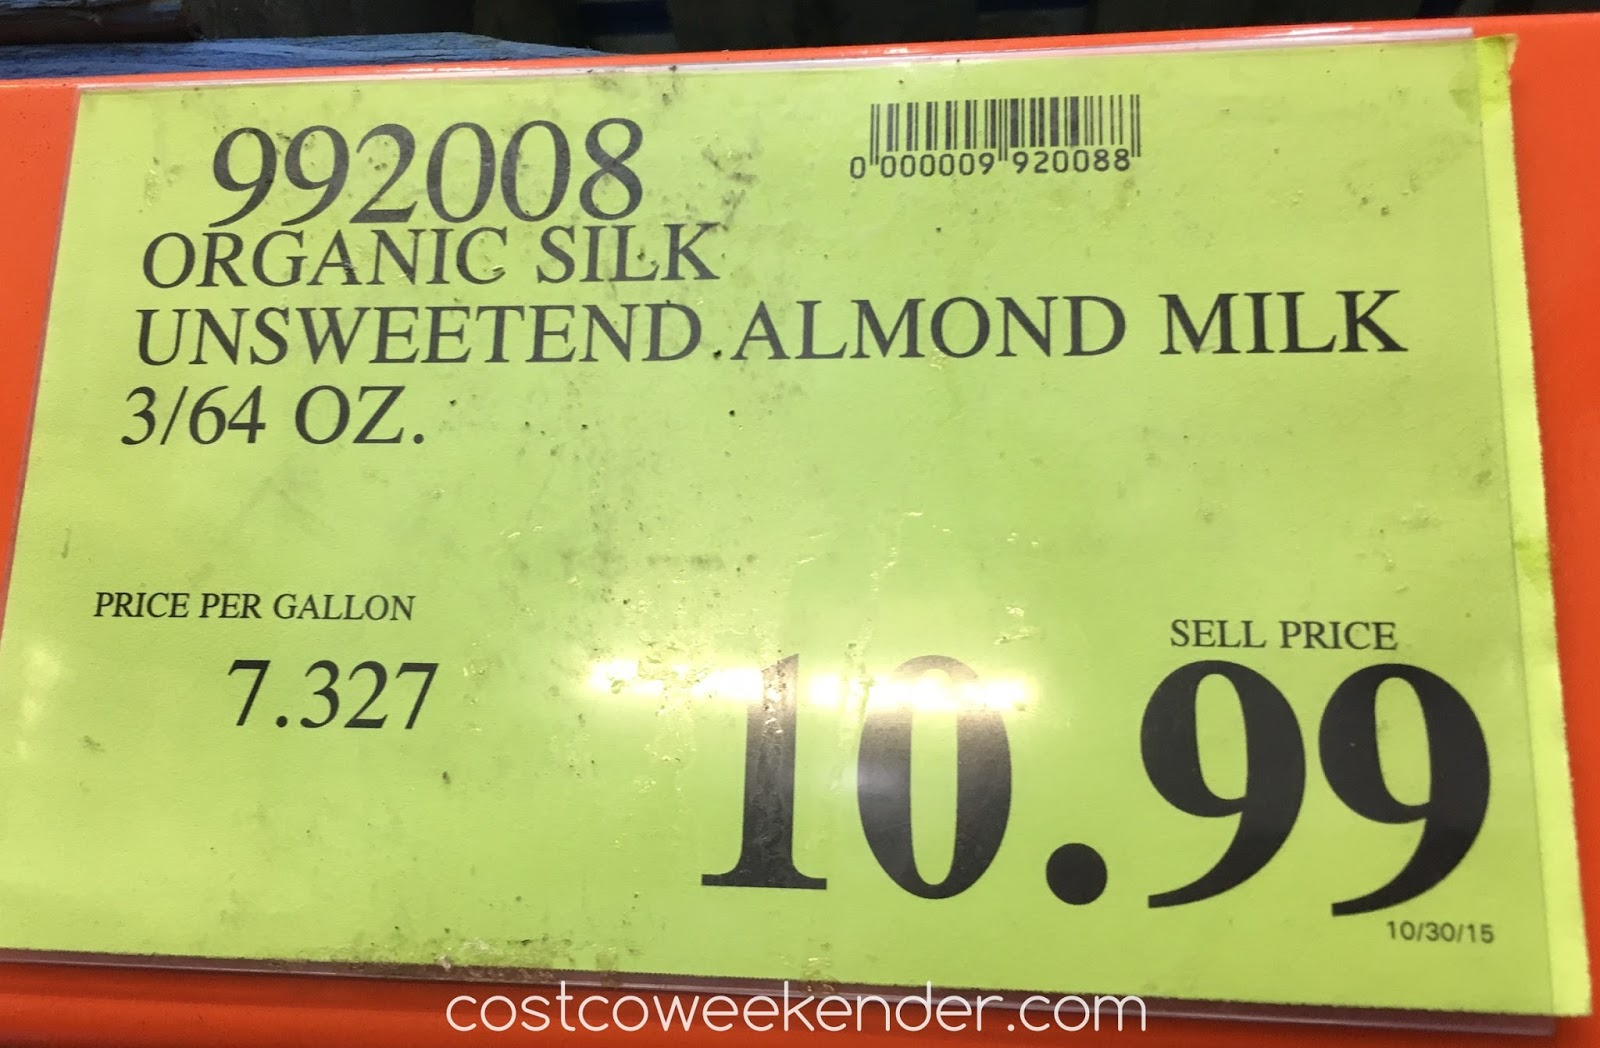 Costco 992008 - Deal for a 3 pack of Silk Organic Unsweetened Almond Milk at Costco